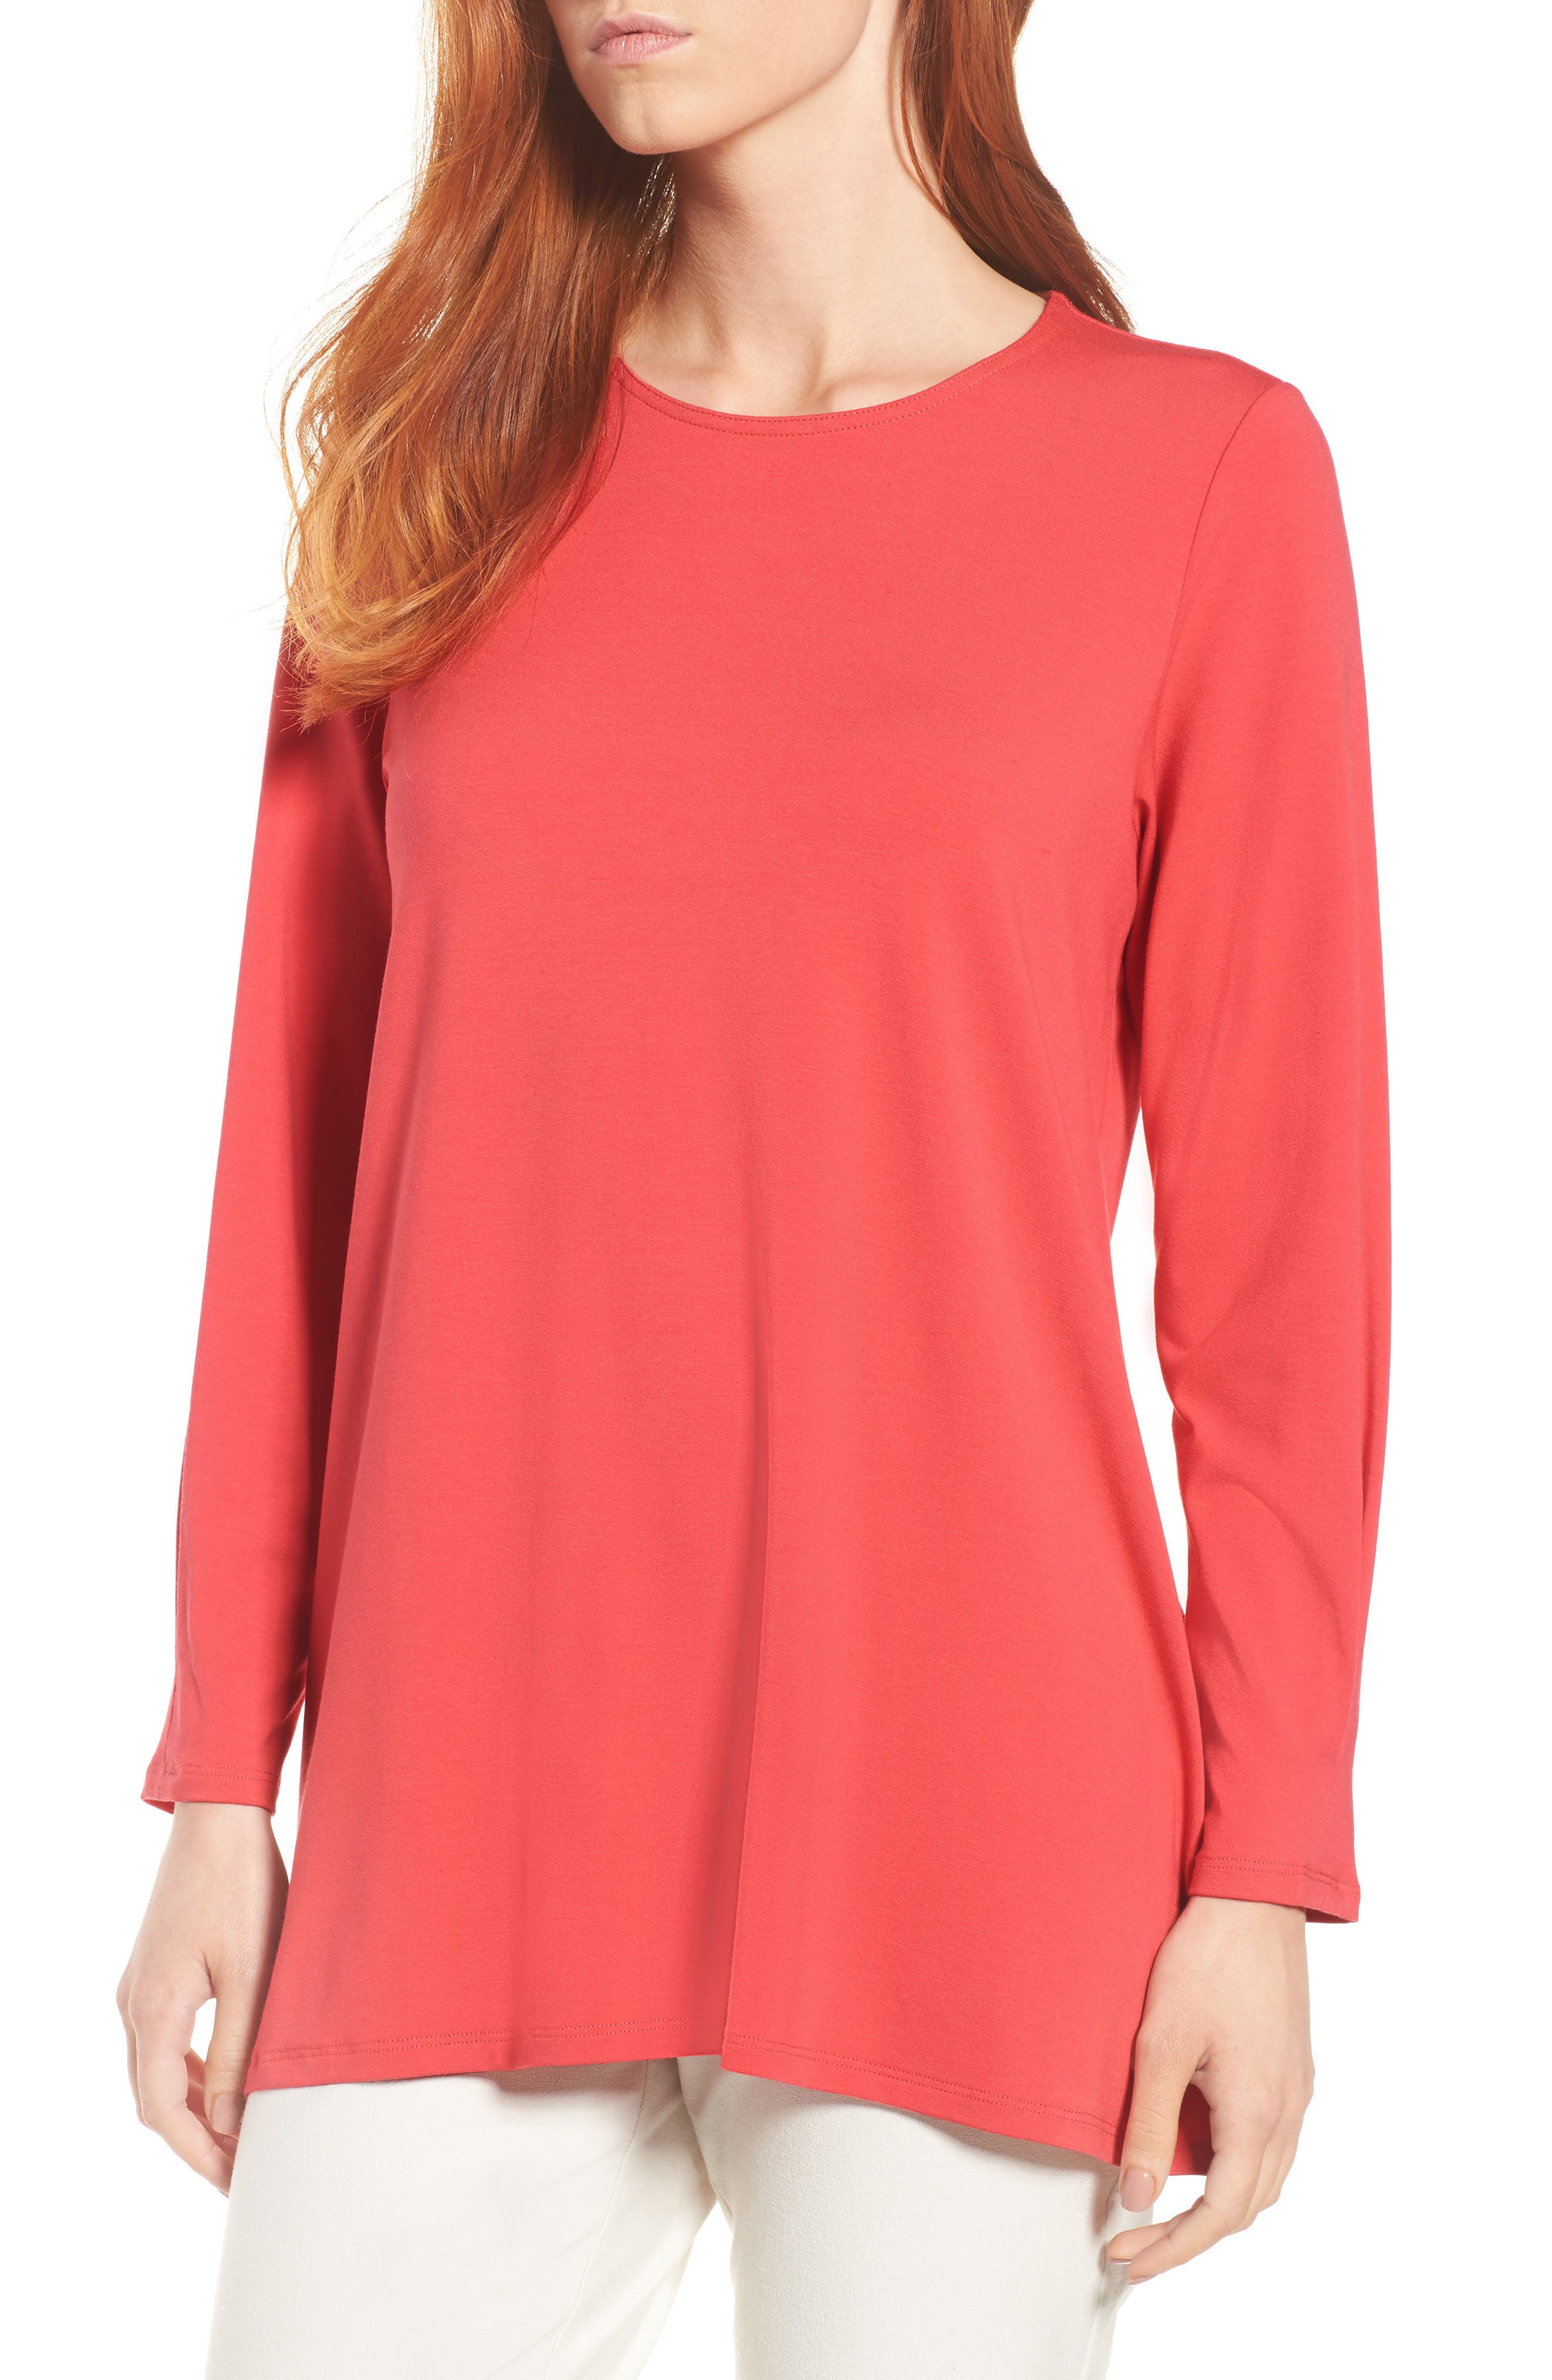 Eileen Fisher Jersey Top (Regular & Petite)